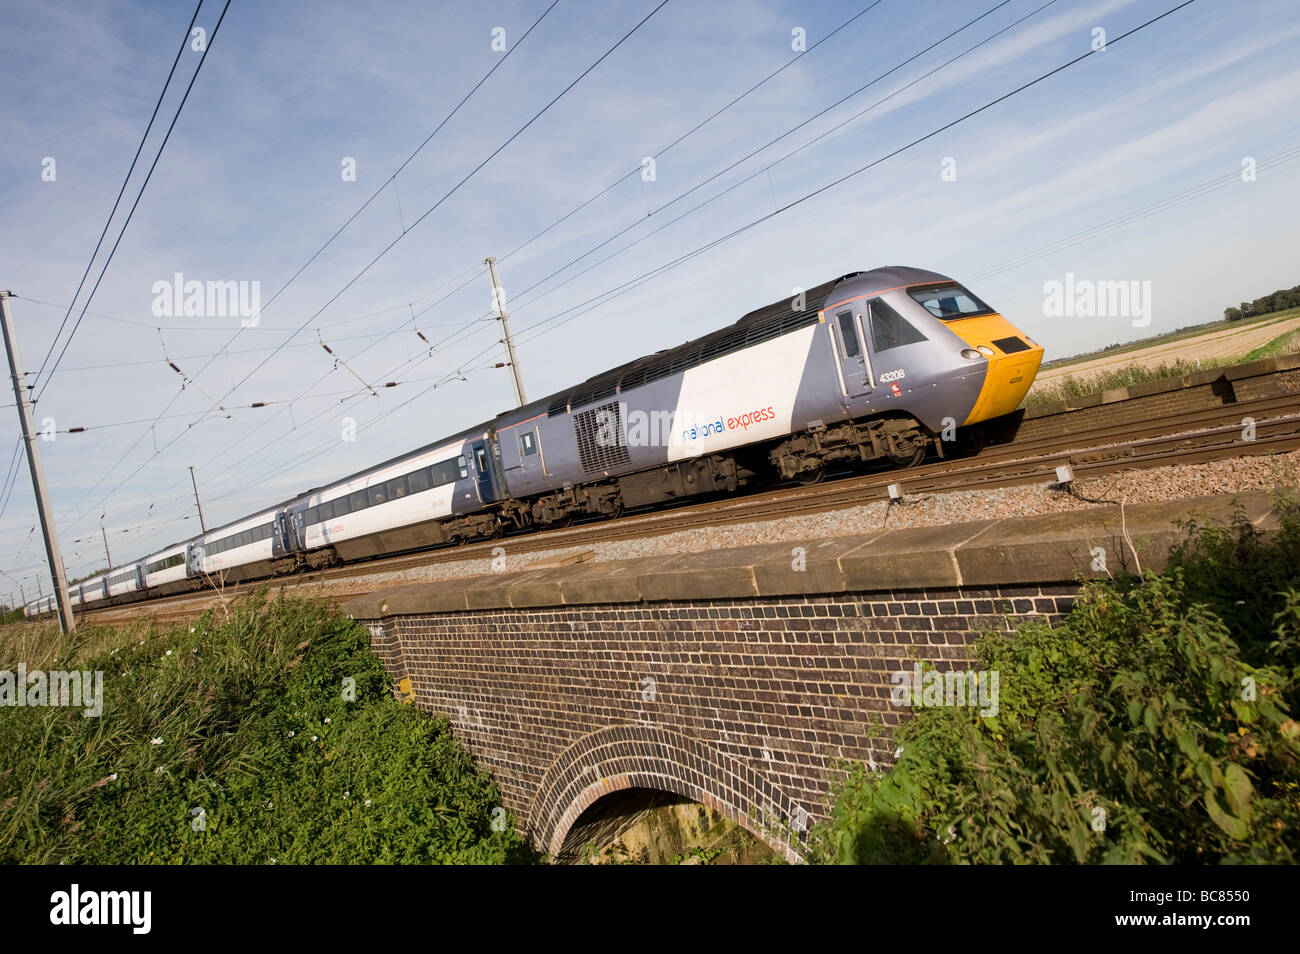 National Express 125 high speed train travelling through the english countryside on the east coast main line england - Stock Image